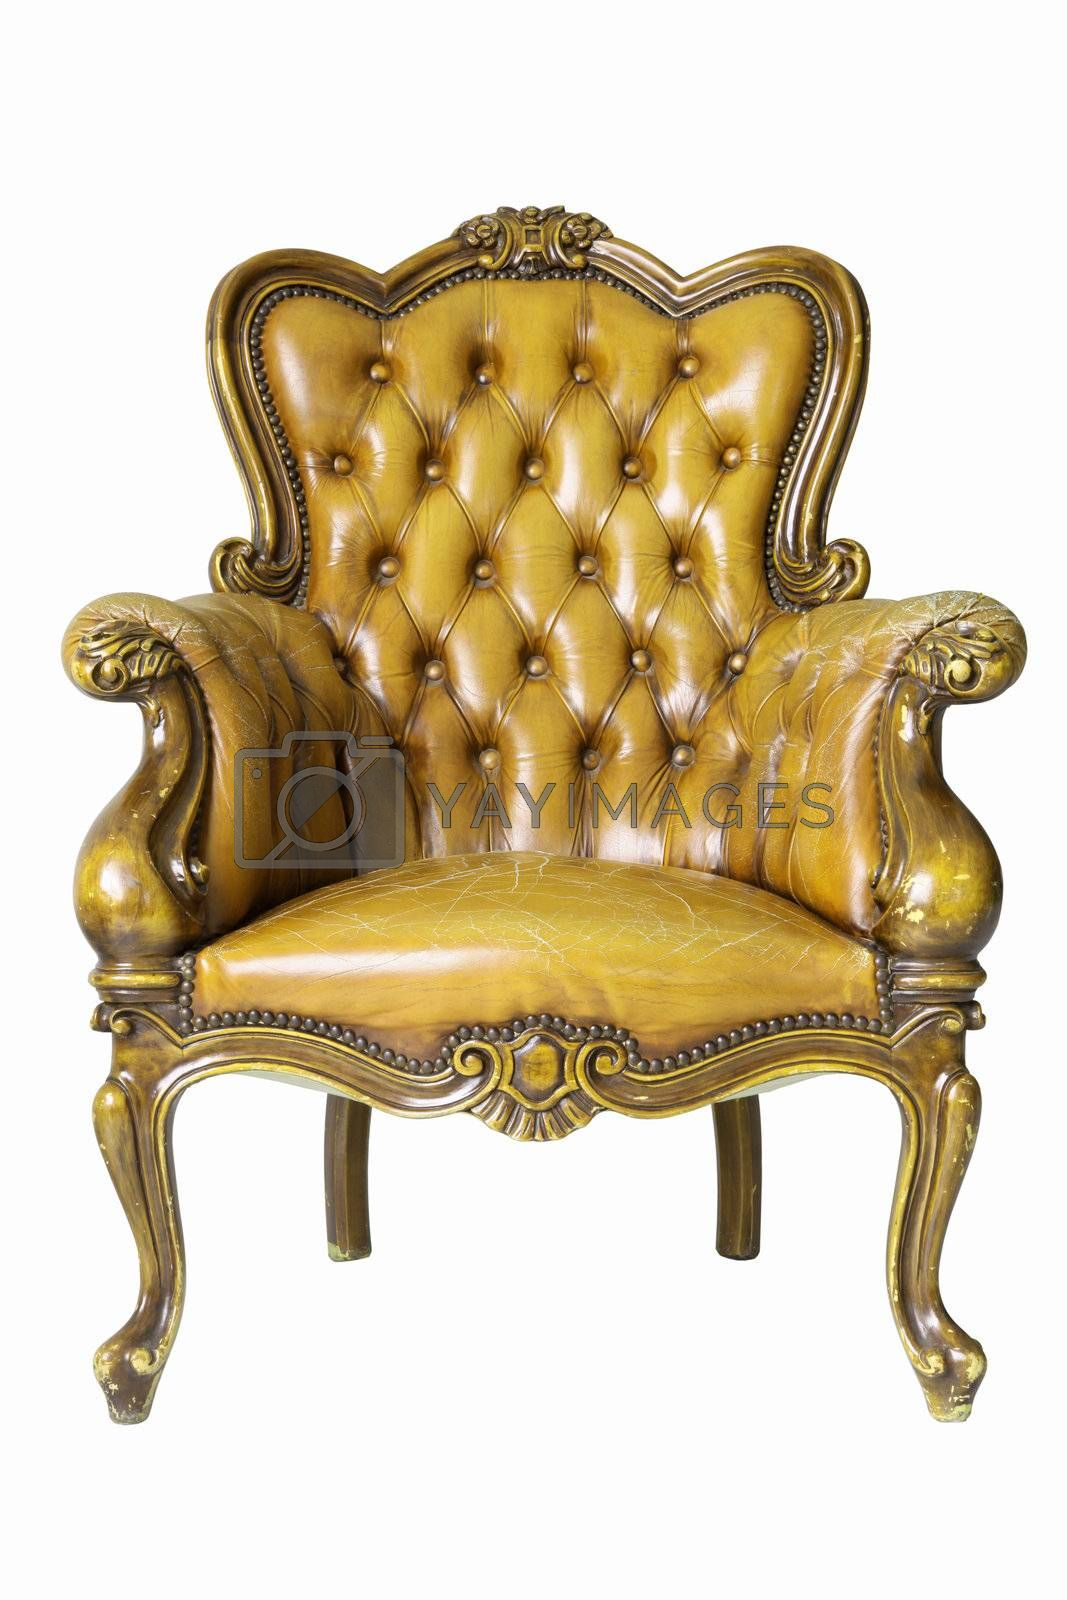 Armchair gold genuine leather classical style sofa with clipping path